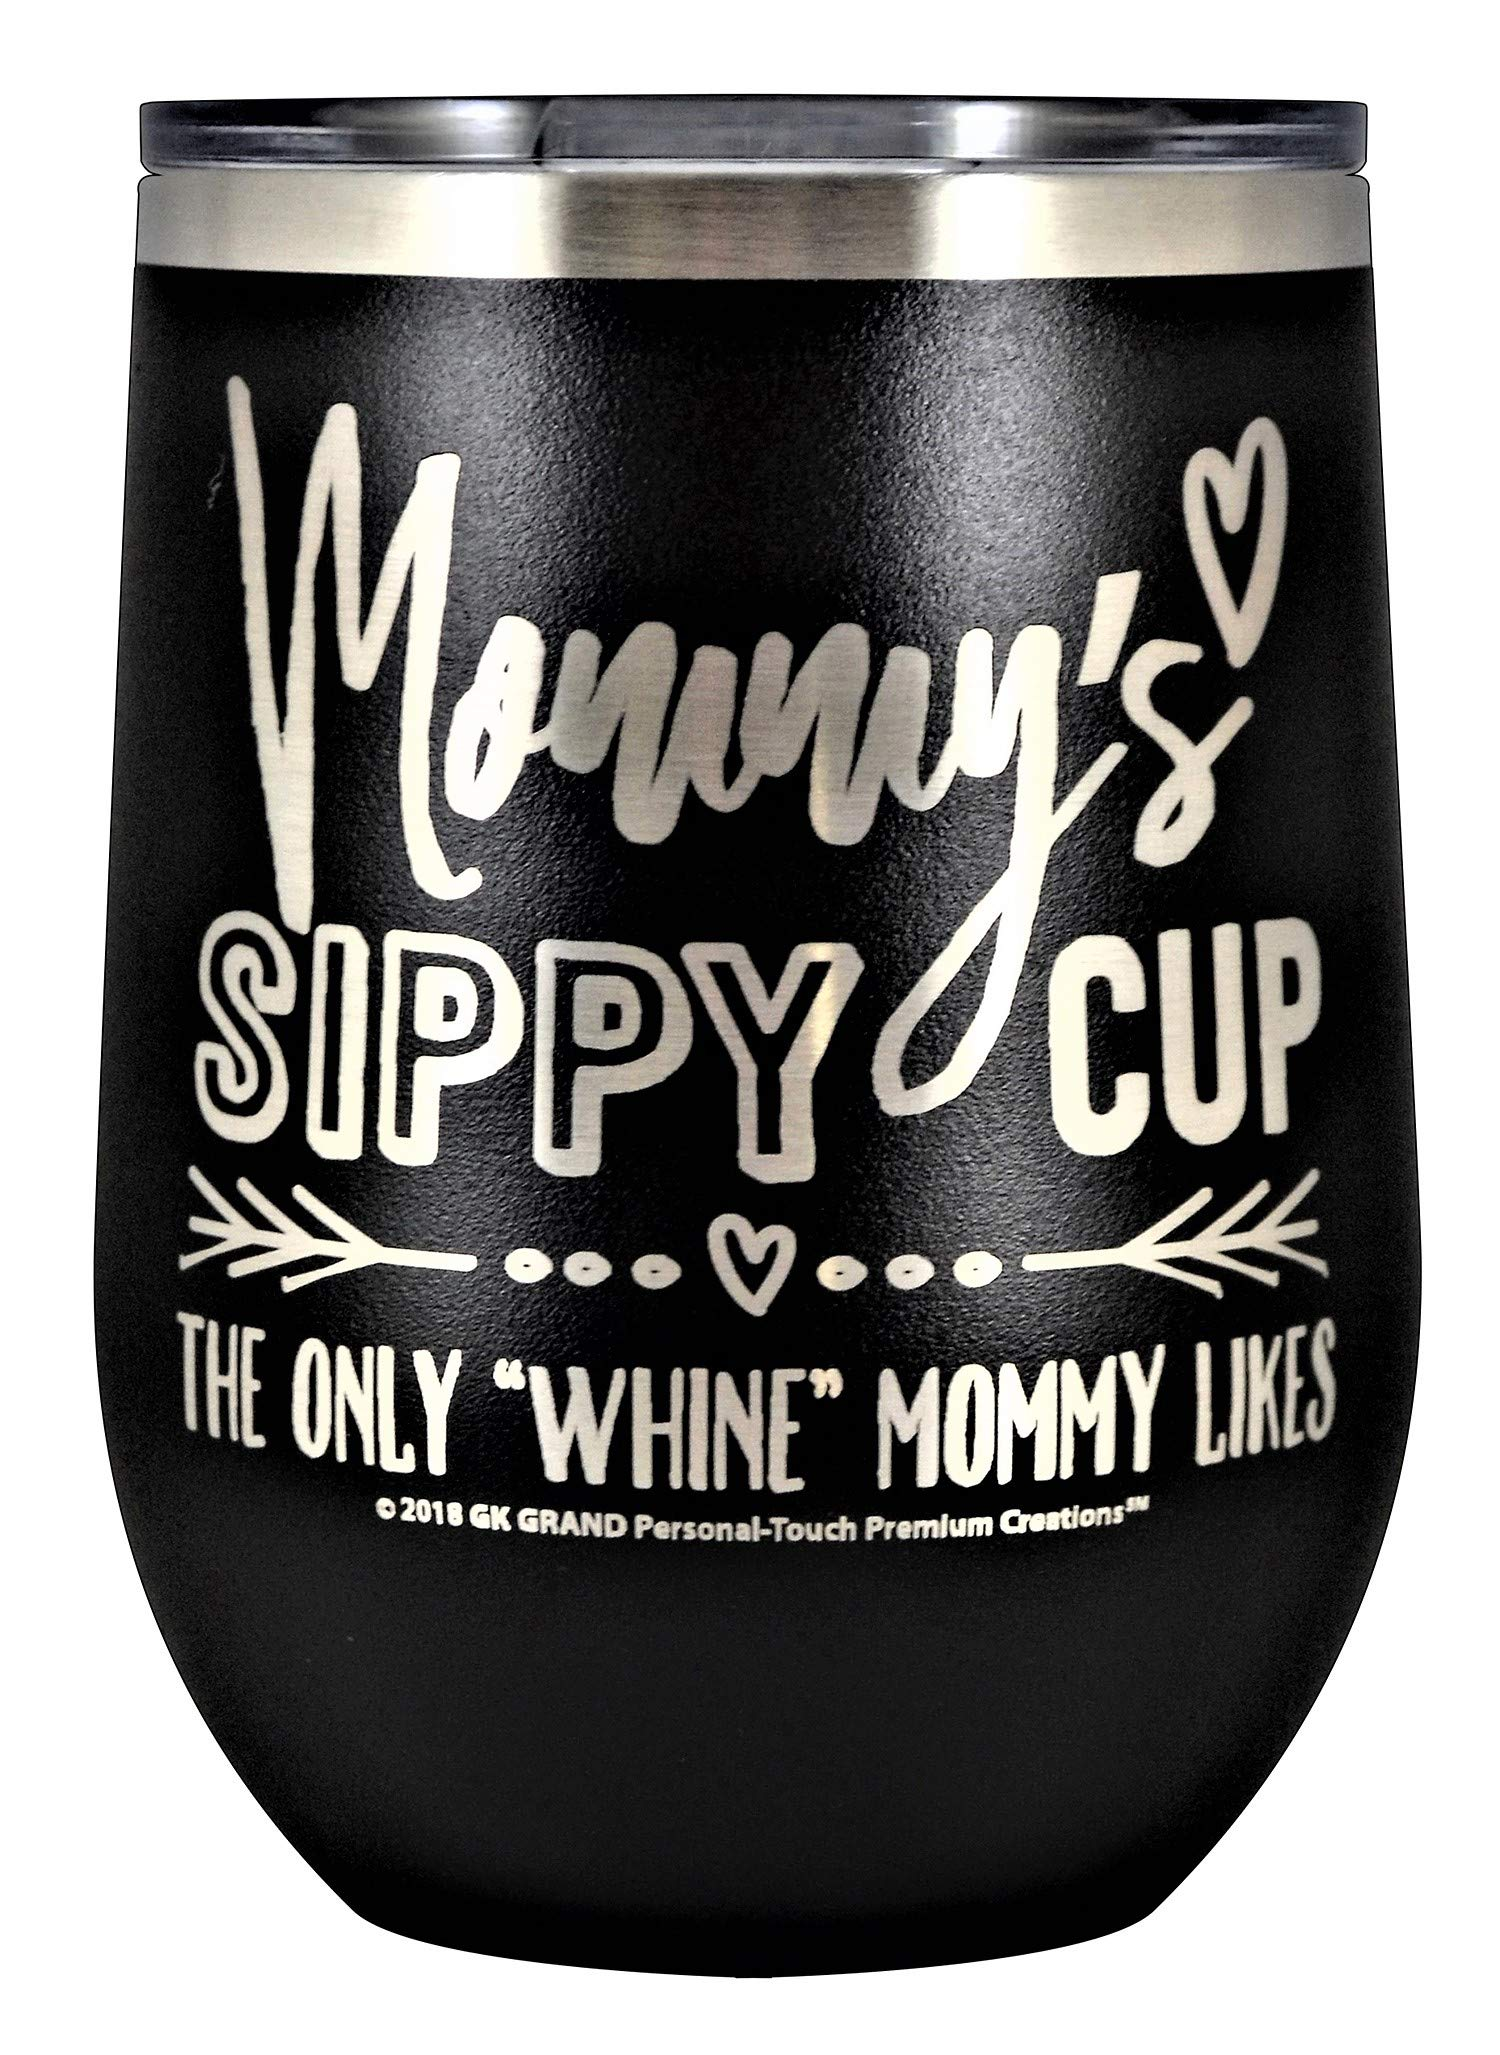 MOMMYS SIPPY CUP WINE GLASS GIFT TUMBLER – Engraved Stainless Steel Stemless Wine Tumbler 12 oz Vacuum Insulated Travel Coffee Mug Hot Cold Drink Mothers Day Christmas Birthday Mom (Black)